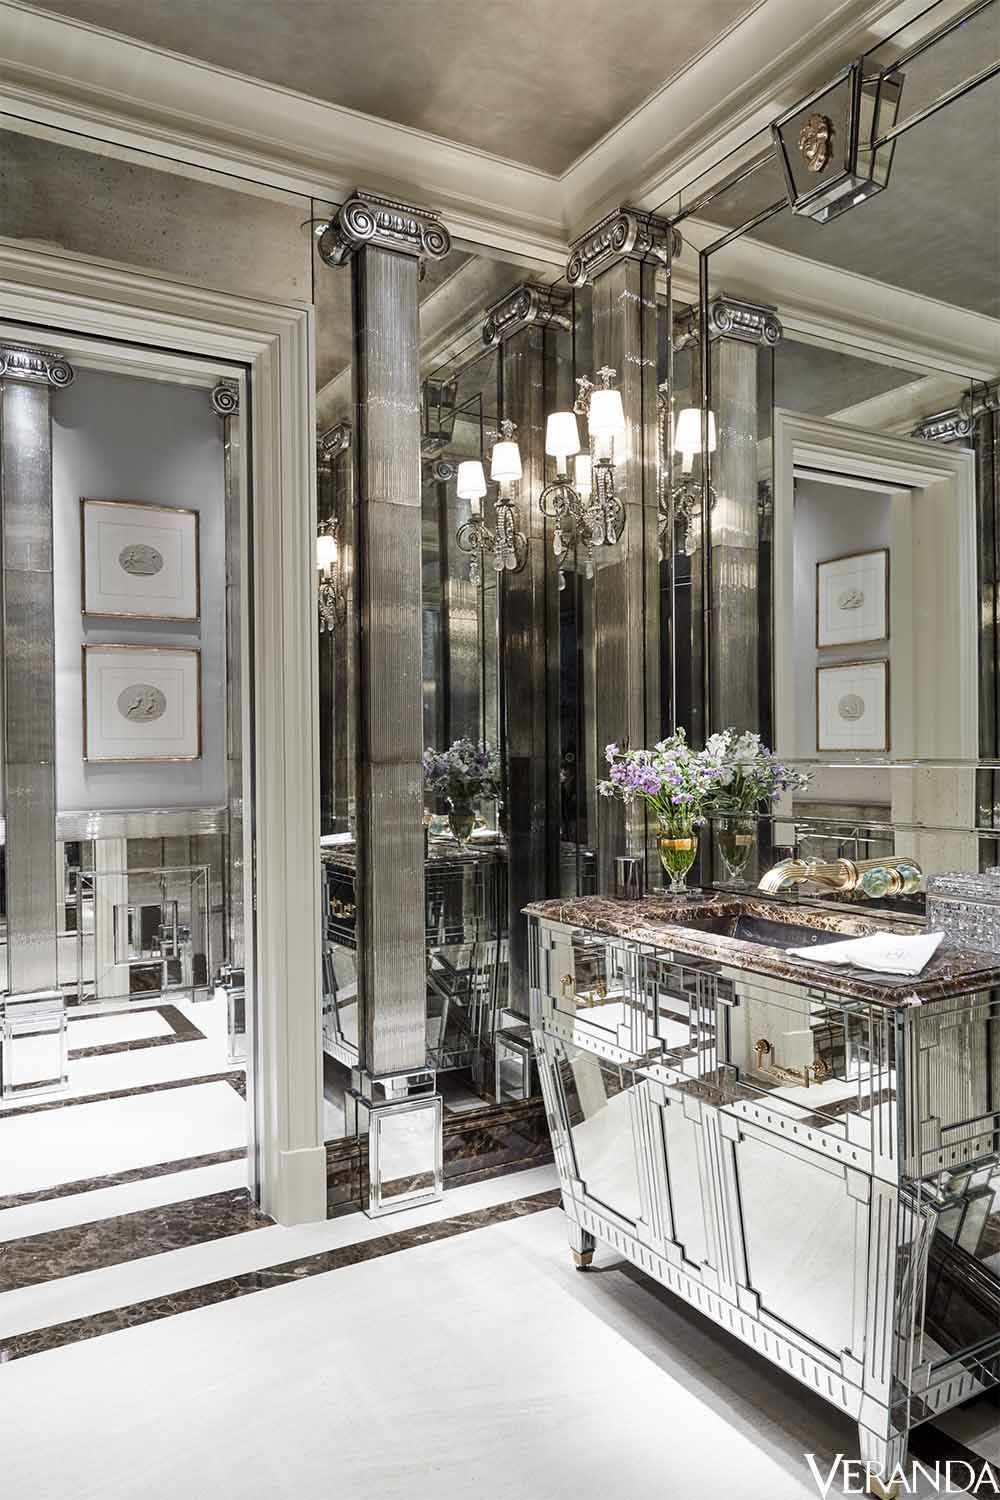 Custom-made mirrored surfaces transform a powder room into a glittering space. Cabinet and mirrors, John Himmel Decorative Arts&#x3B; sink and fittings, Daum for THG&#x3B; sconces, Niermann Weeks.